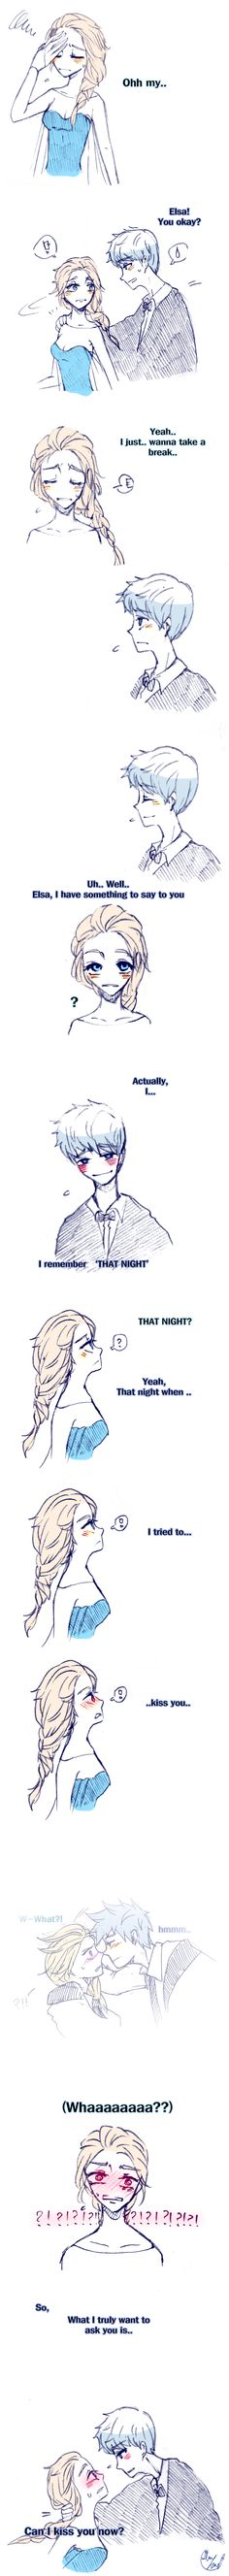 Rise of the Guardians' Jack Frost and Frozen's Elsa   J.K. Rowling's Harry Potter / [Triwizard] Ball-Jelsa (2) by Lime-Hael on DeviantArt